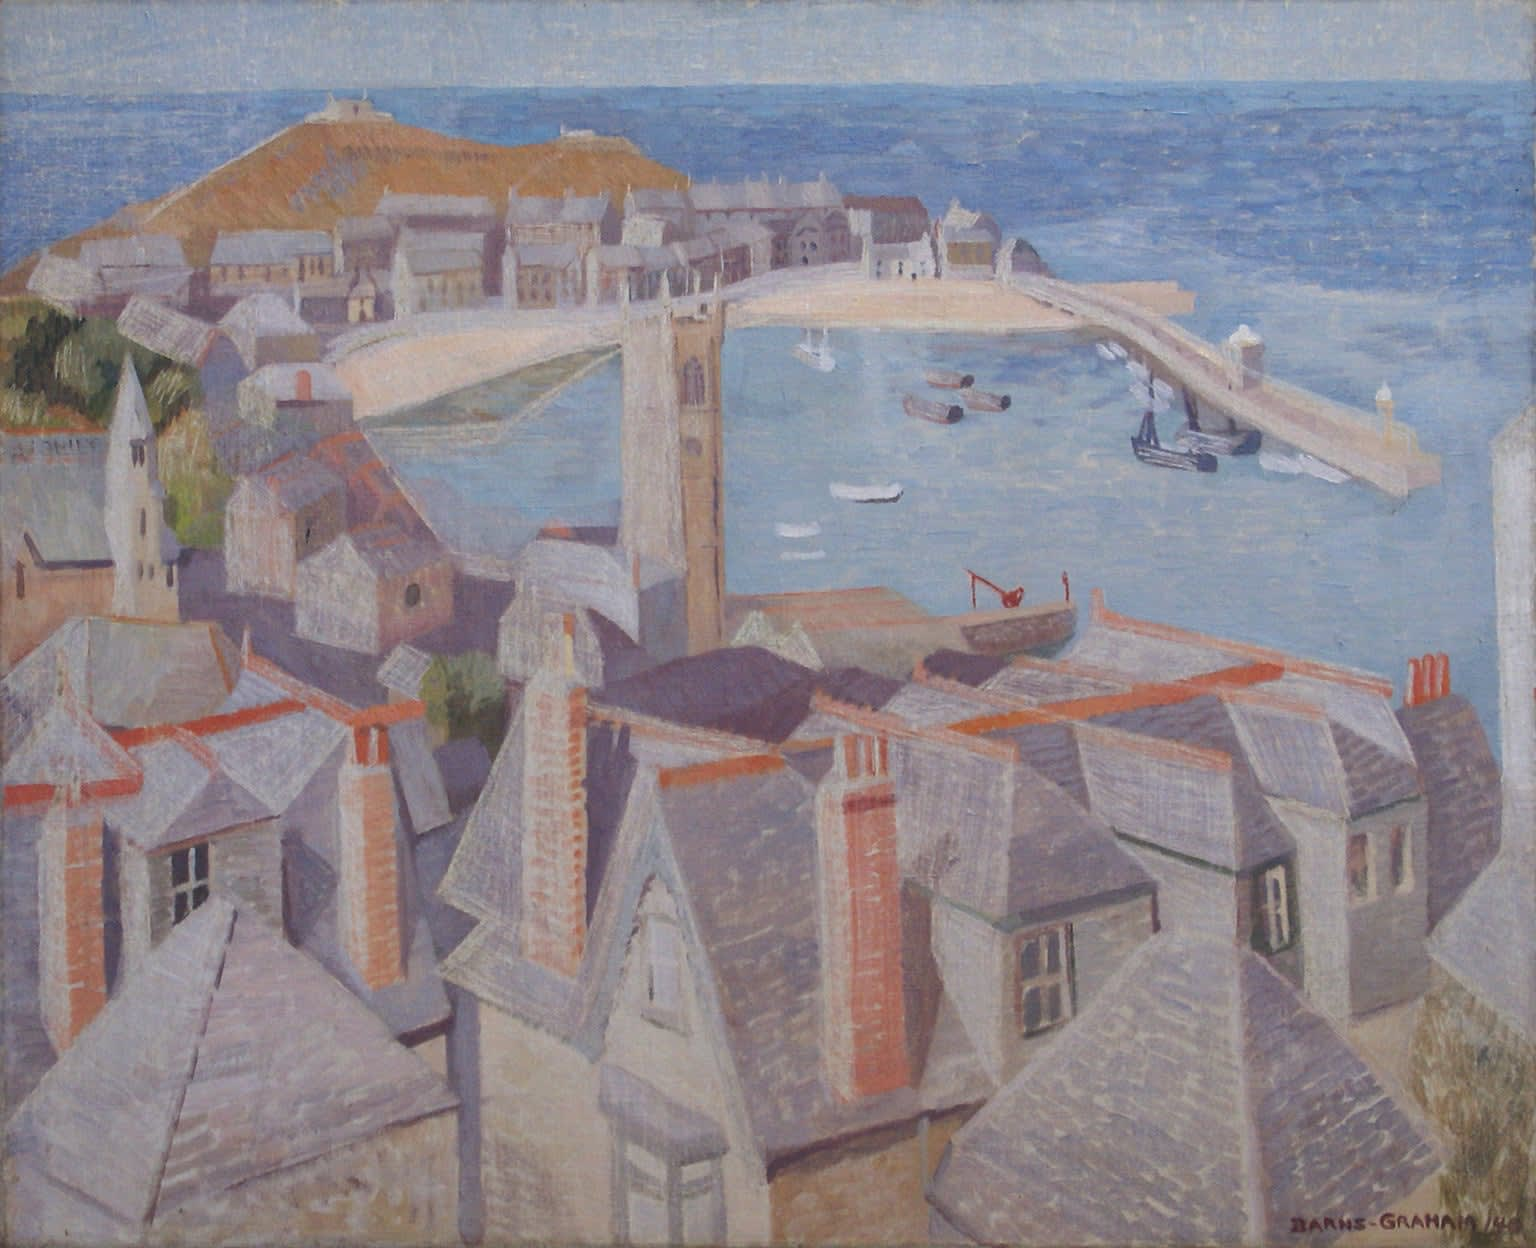 Wilhelmina BARNS-GRAHAM (1912 – 2004) View of St Ives, 1940 Oil on canvas 25 x 30 ¼ inches / 63.5 x 76.5 cm